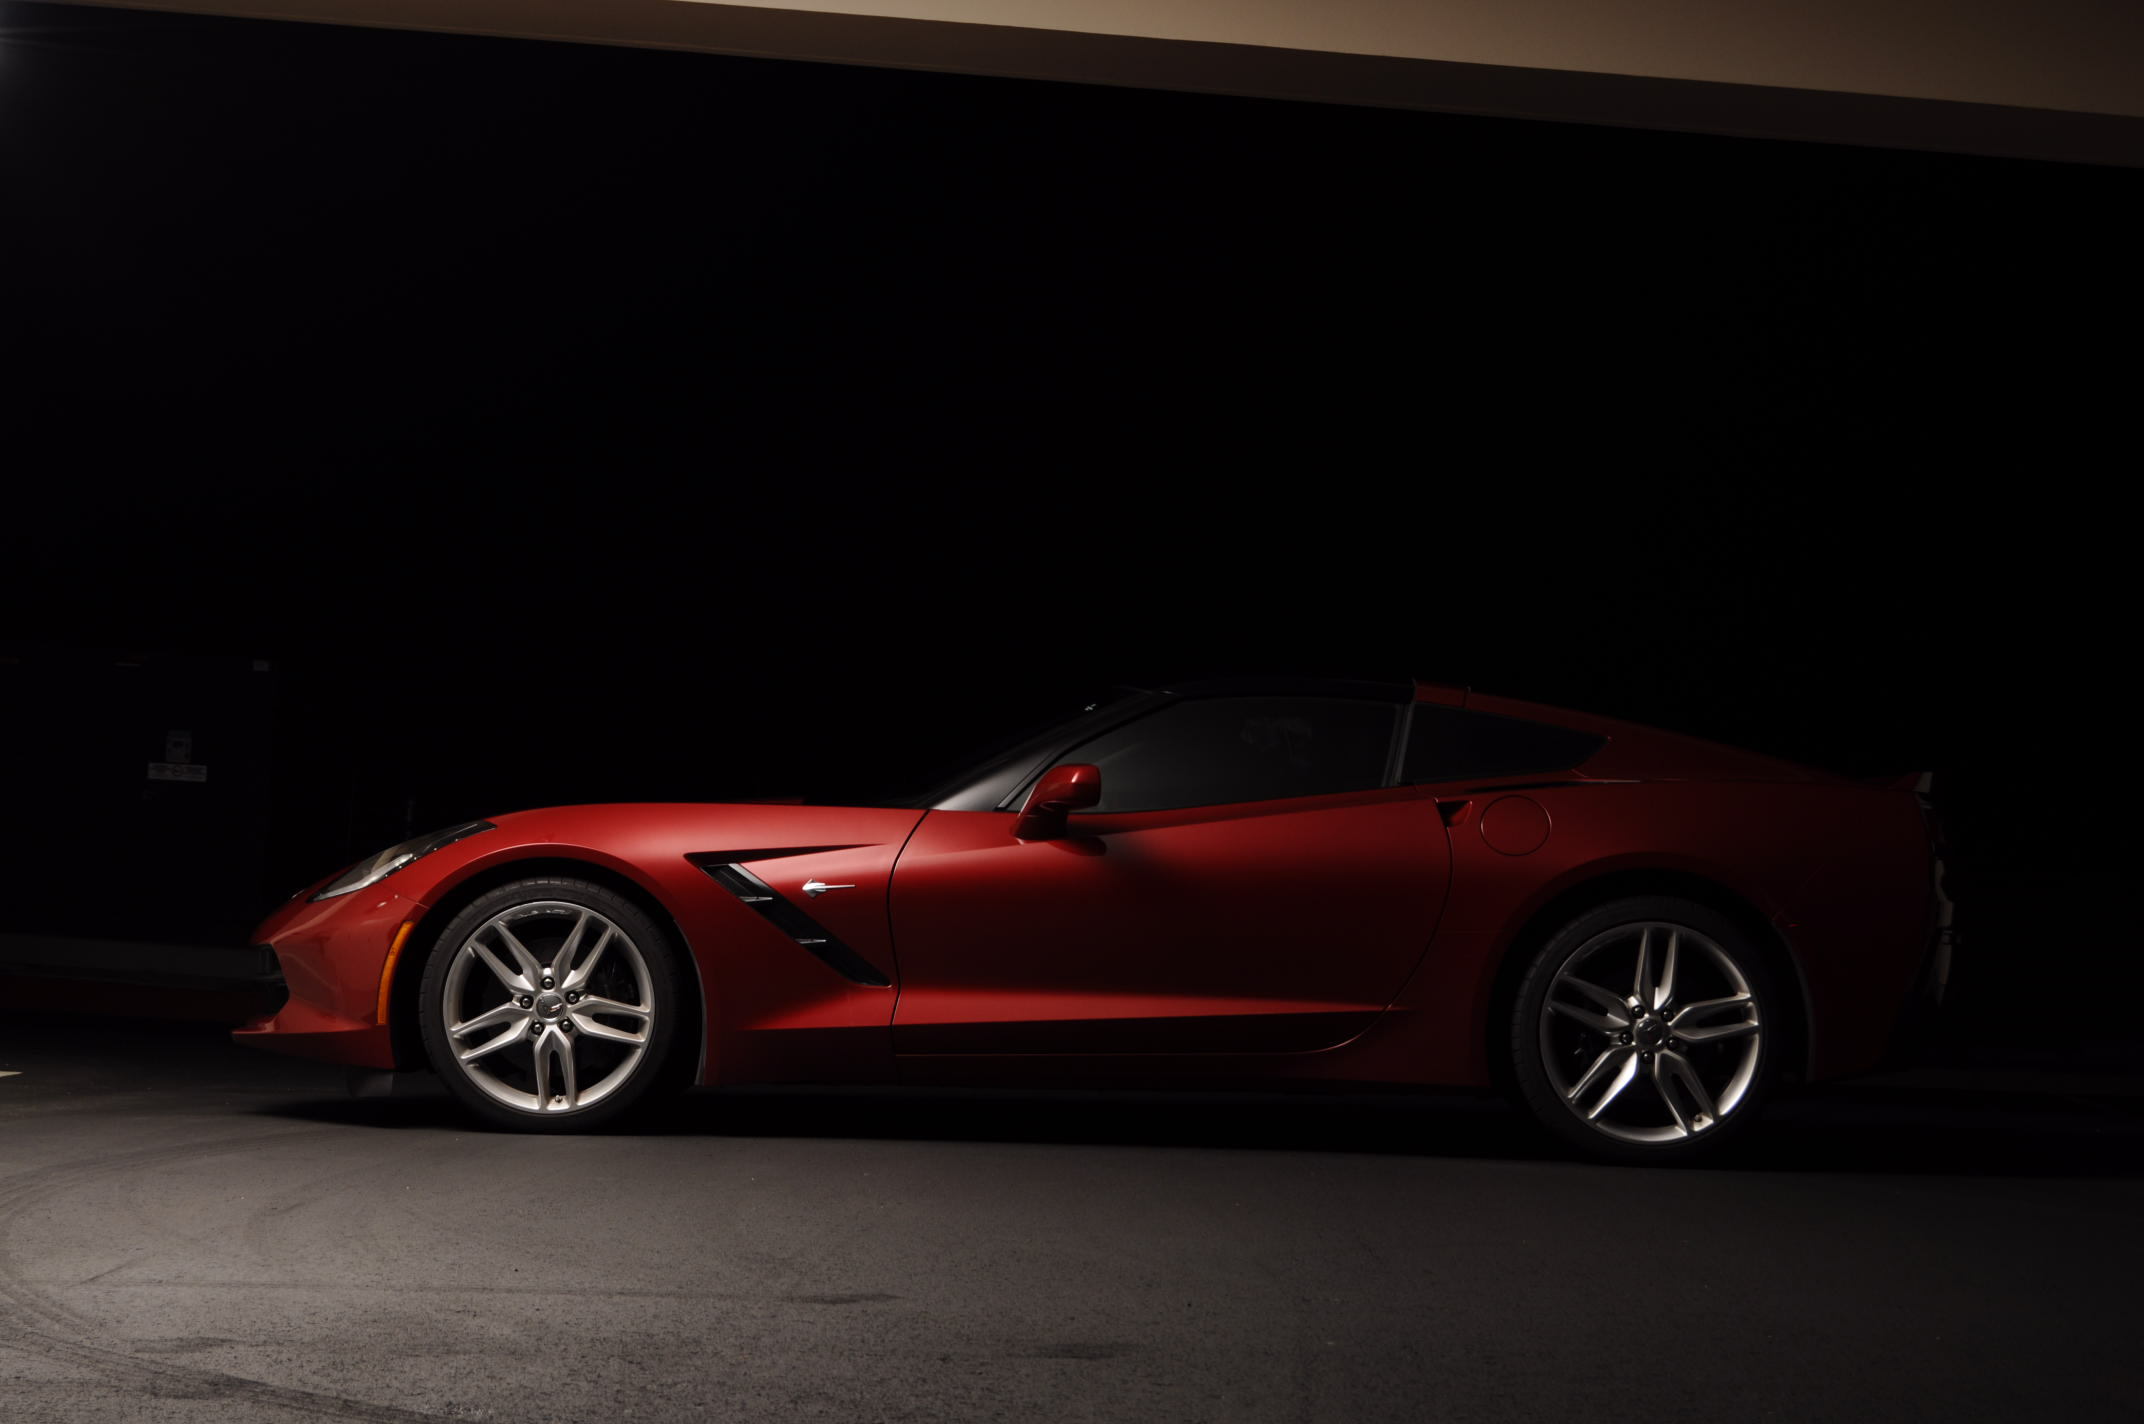 Corvette Shoot! 2015 C7 Crystal Red Tintcoat